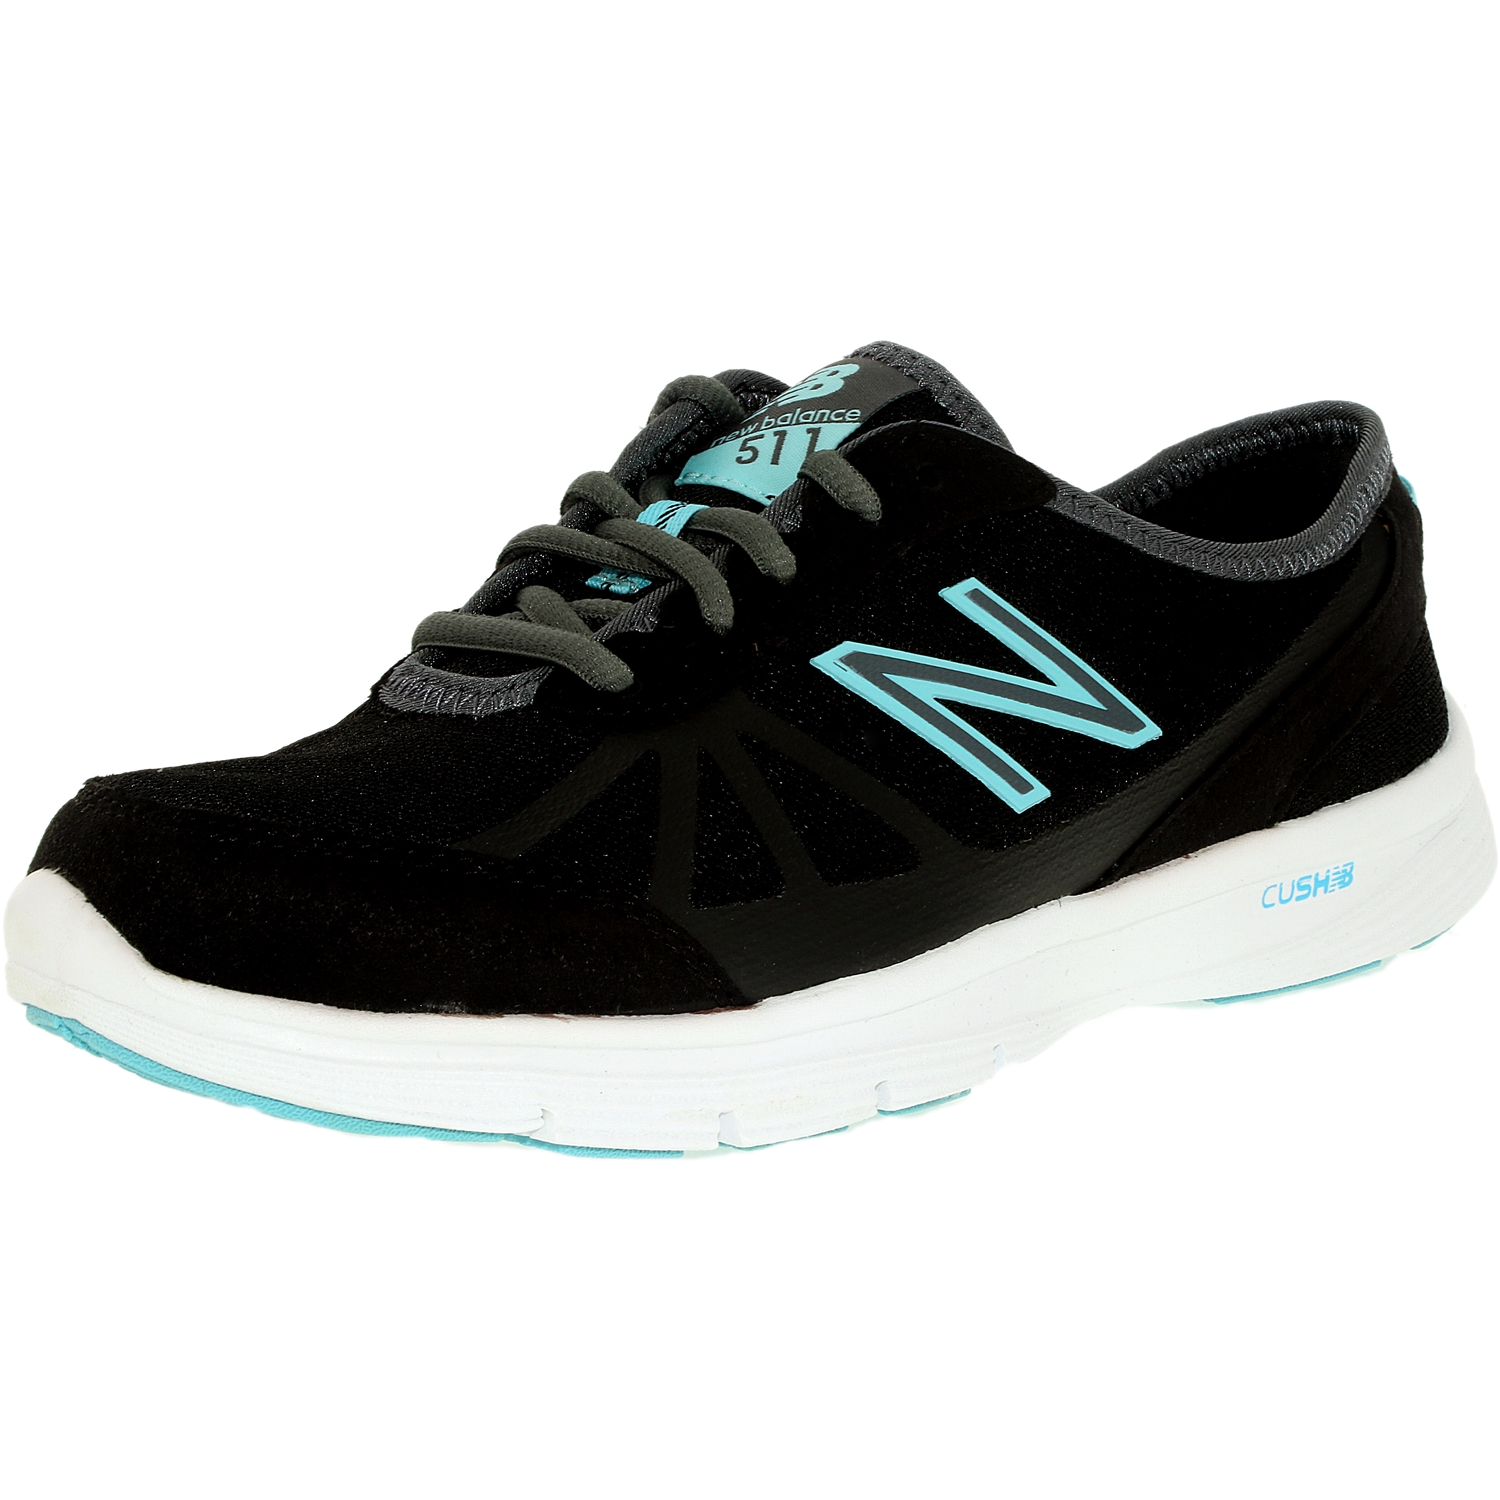 New Balance Women's Walking Low Top Fabric Walking Shoe